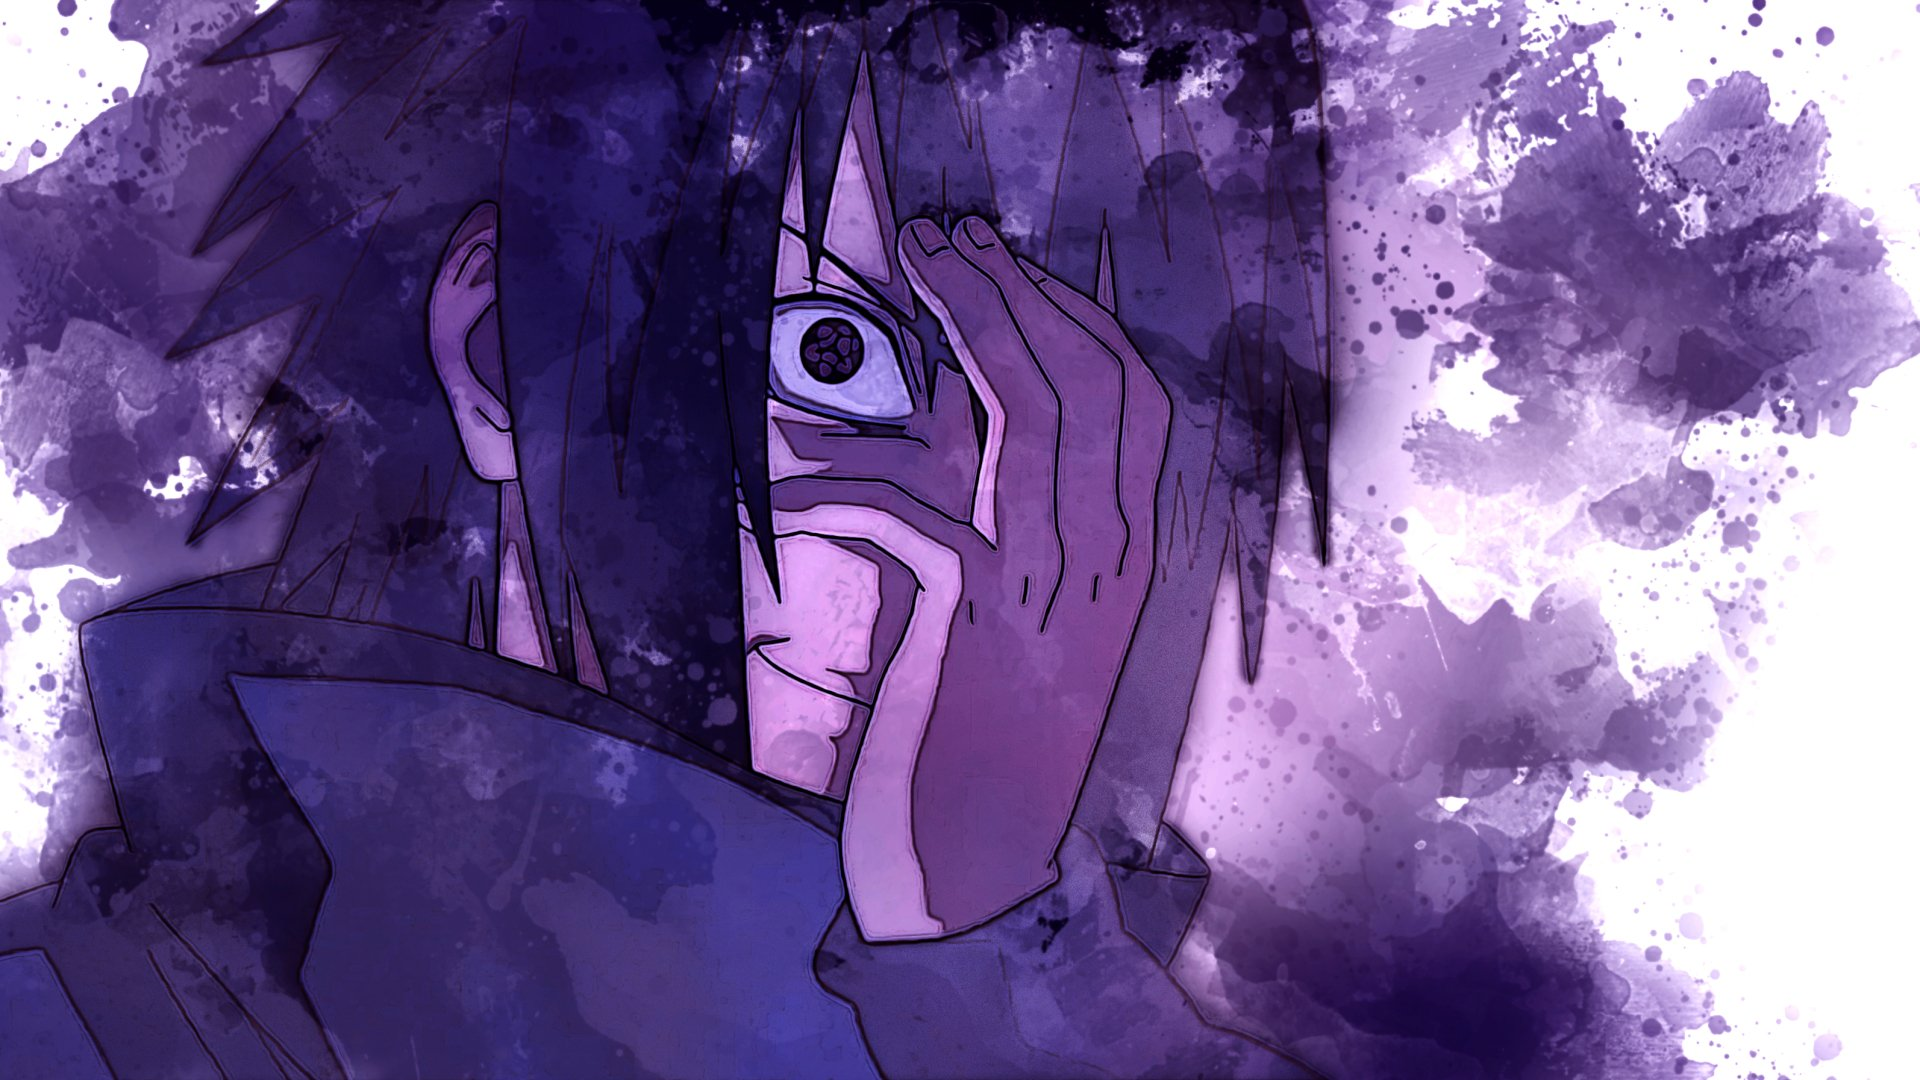 Sasuke Eternal Mangekyou Sharingan Hd Wallpaper Background Image 3187x1793 Id 982240 Wallpaper Abyss